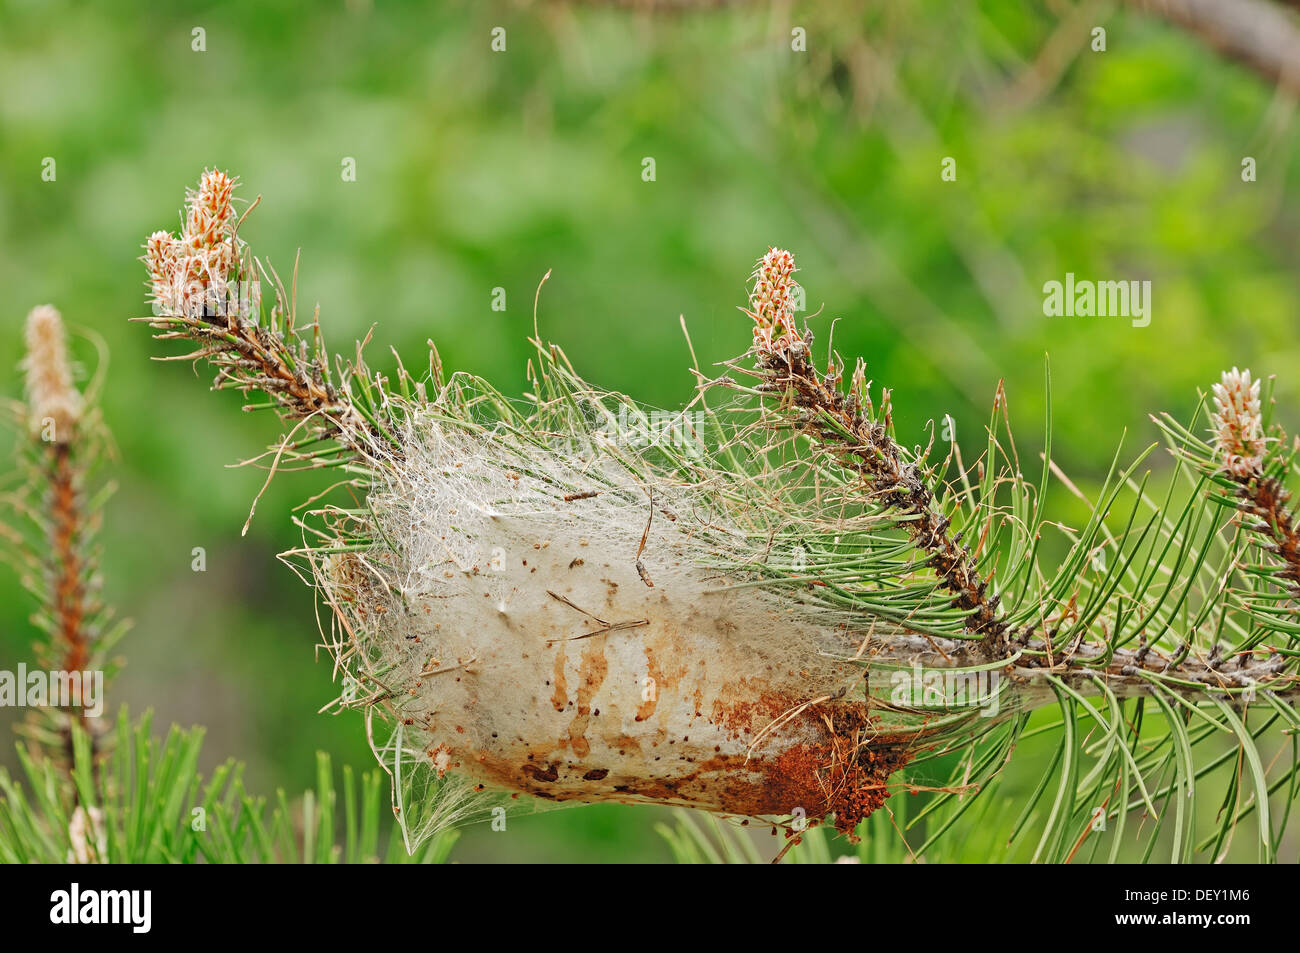 Pine Processionary Moth (Thaumetopoea pityocampa), caterpillar web, Provence, Southern France, France, Europe - Stock Image